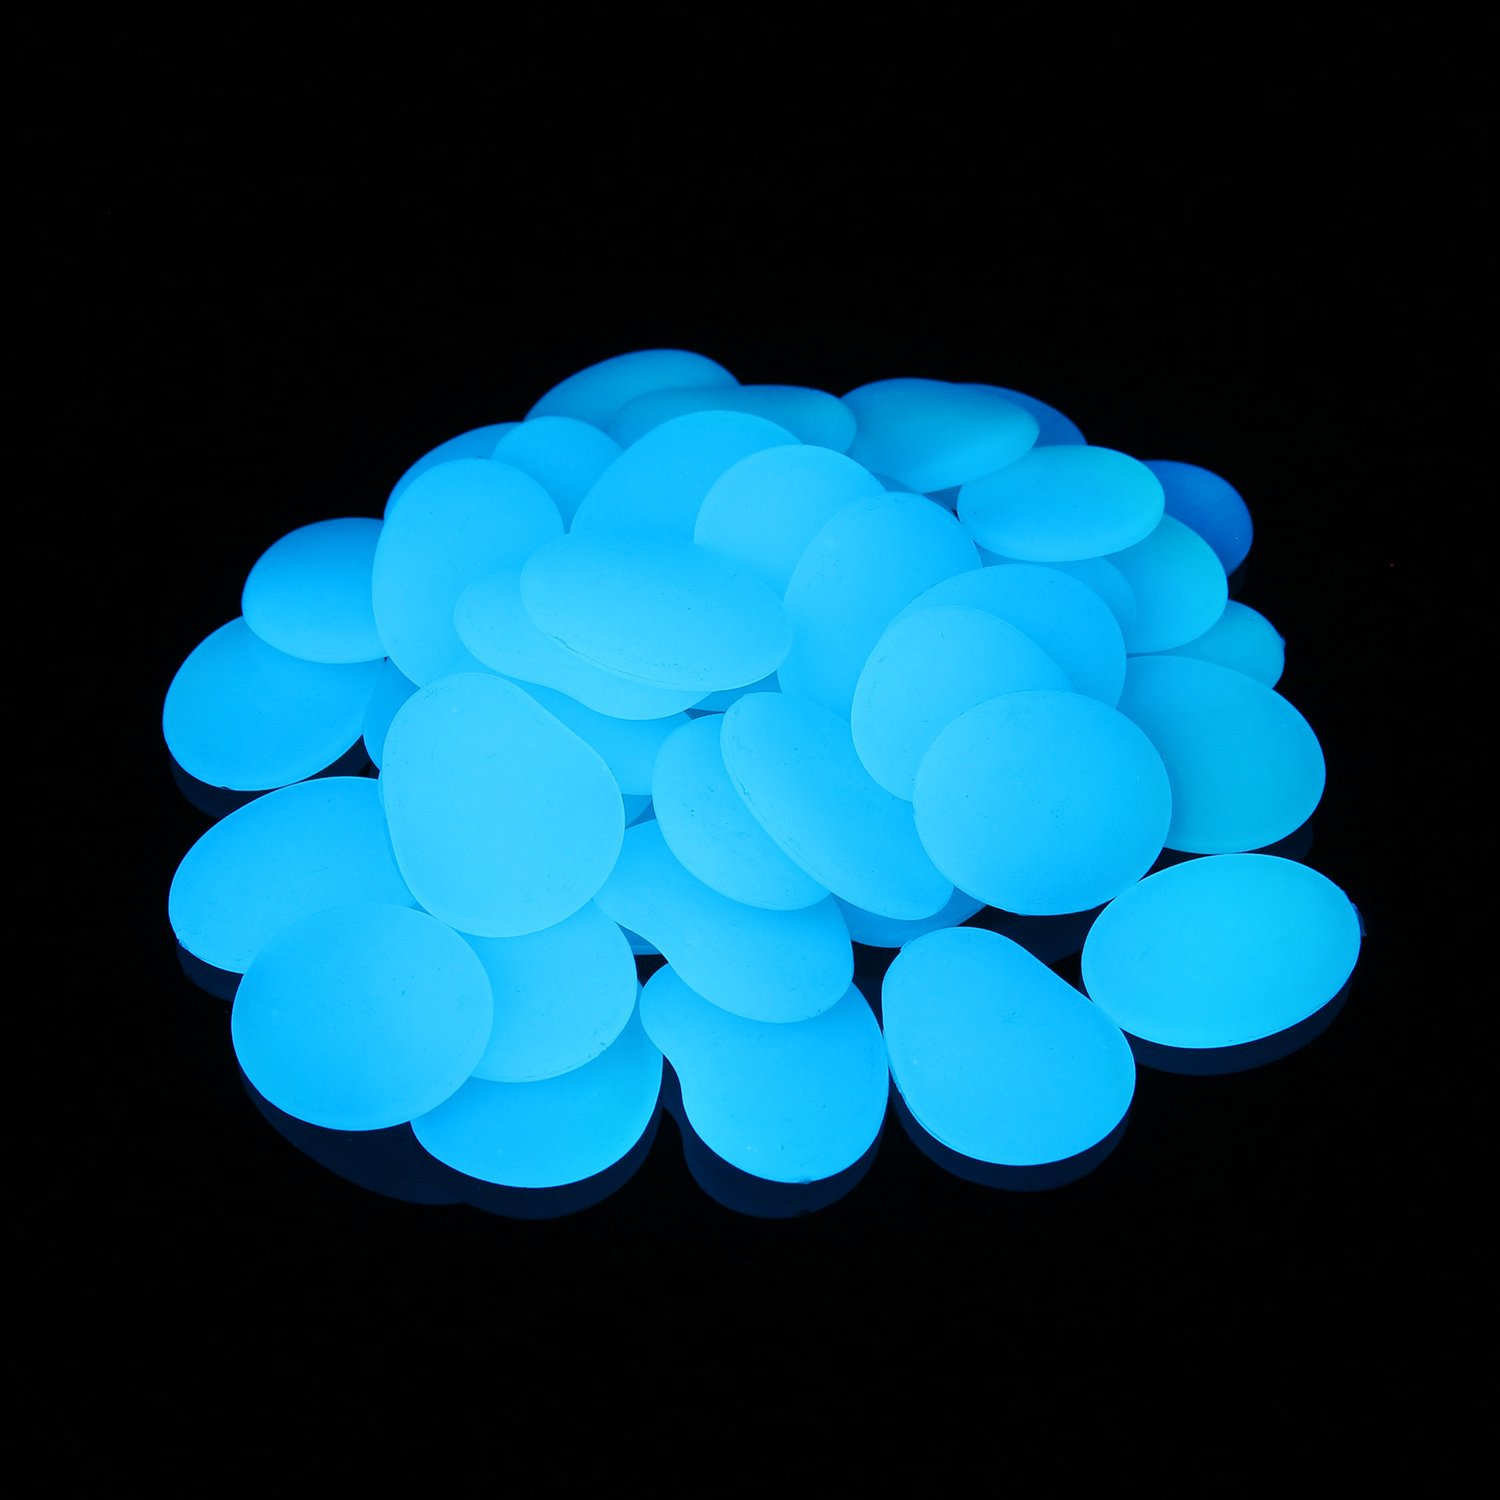 Glow in The Dark Pebbles for Garden Décor, Glow in The Dark Rocks for Fairy Garden, Glowing Stones Fish Tank Aquarium Gravel DIY Garden Gifts (Flake Shape, 44pcs,315g/11.11oz/0.69lb) (Green) Xiamen Alan Stone Trade Co. Ltd